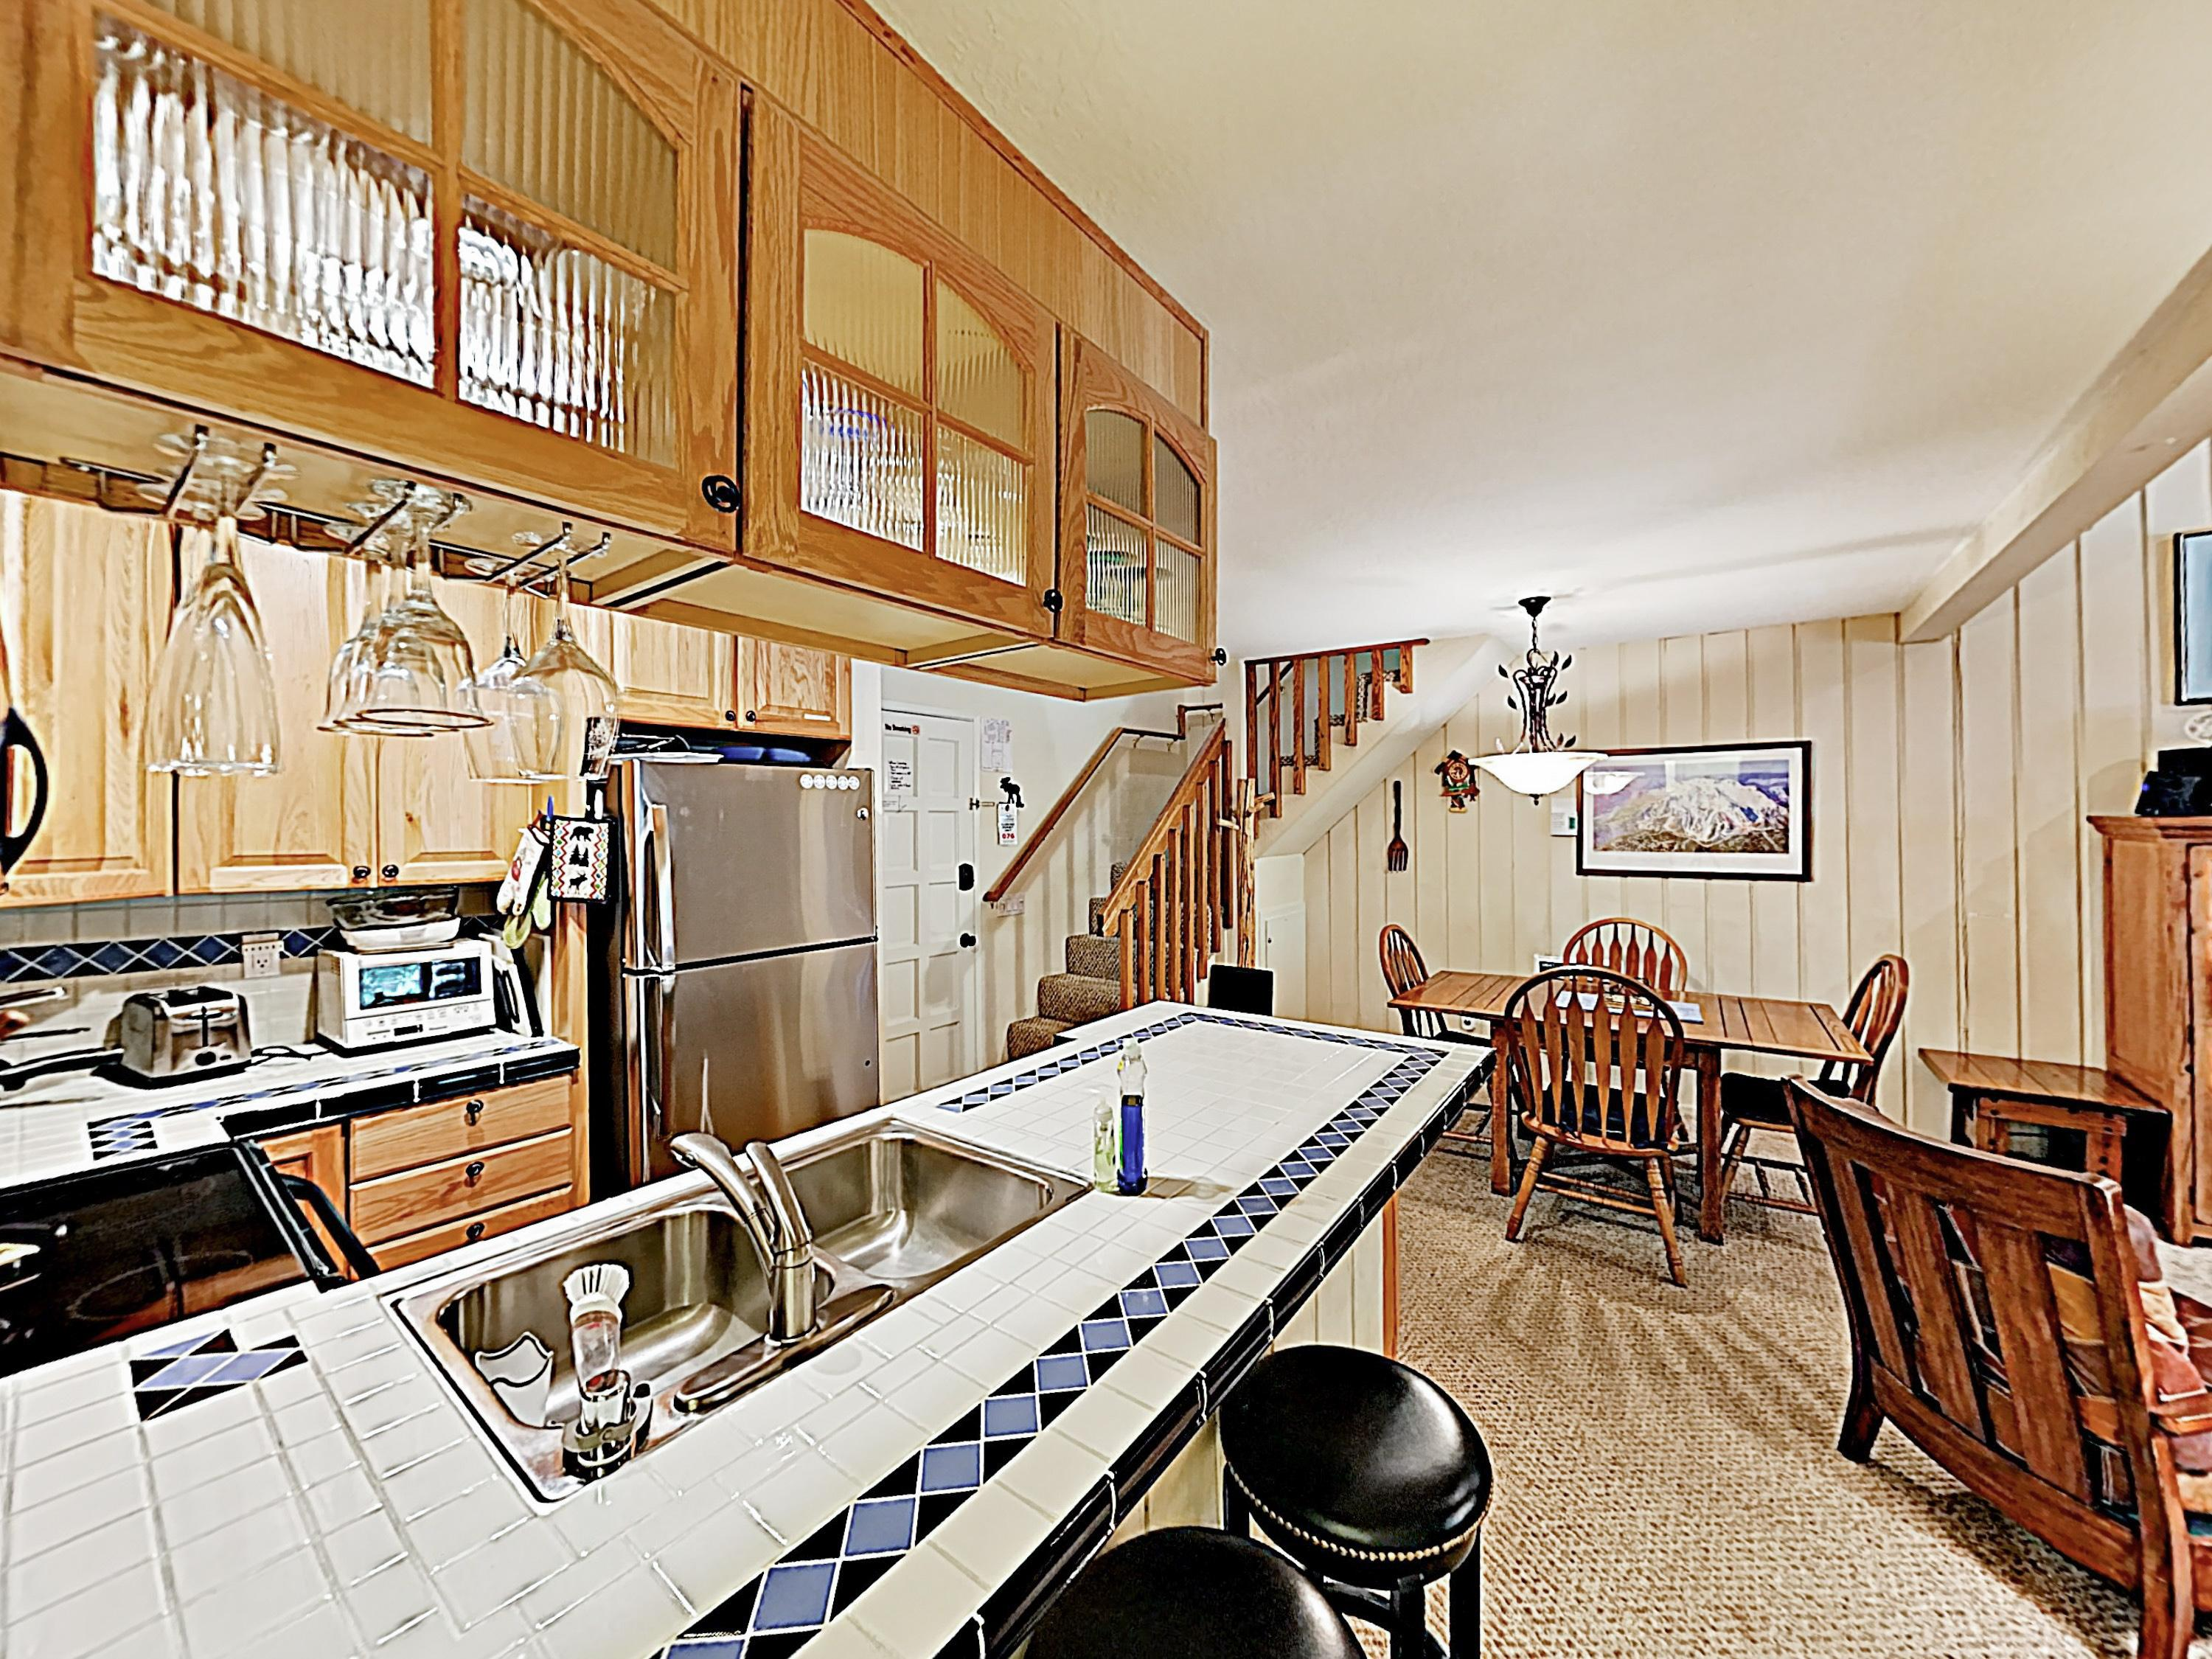 Whip up hot meals in the fully stocked kitchen, furnished with accent tile countertops and quality appliances.